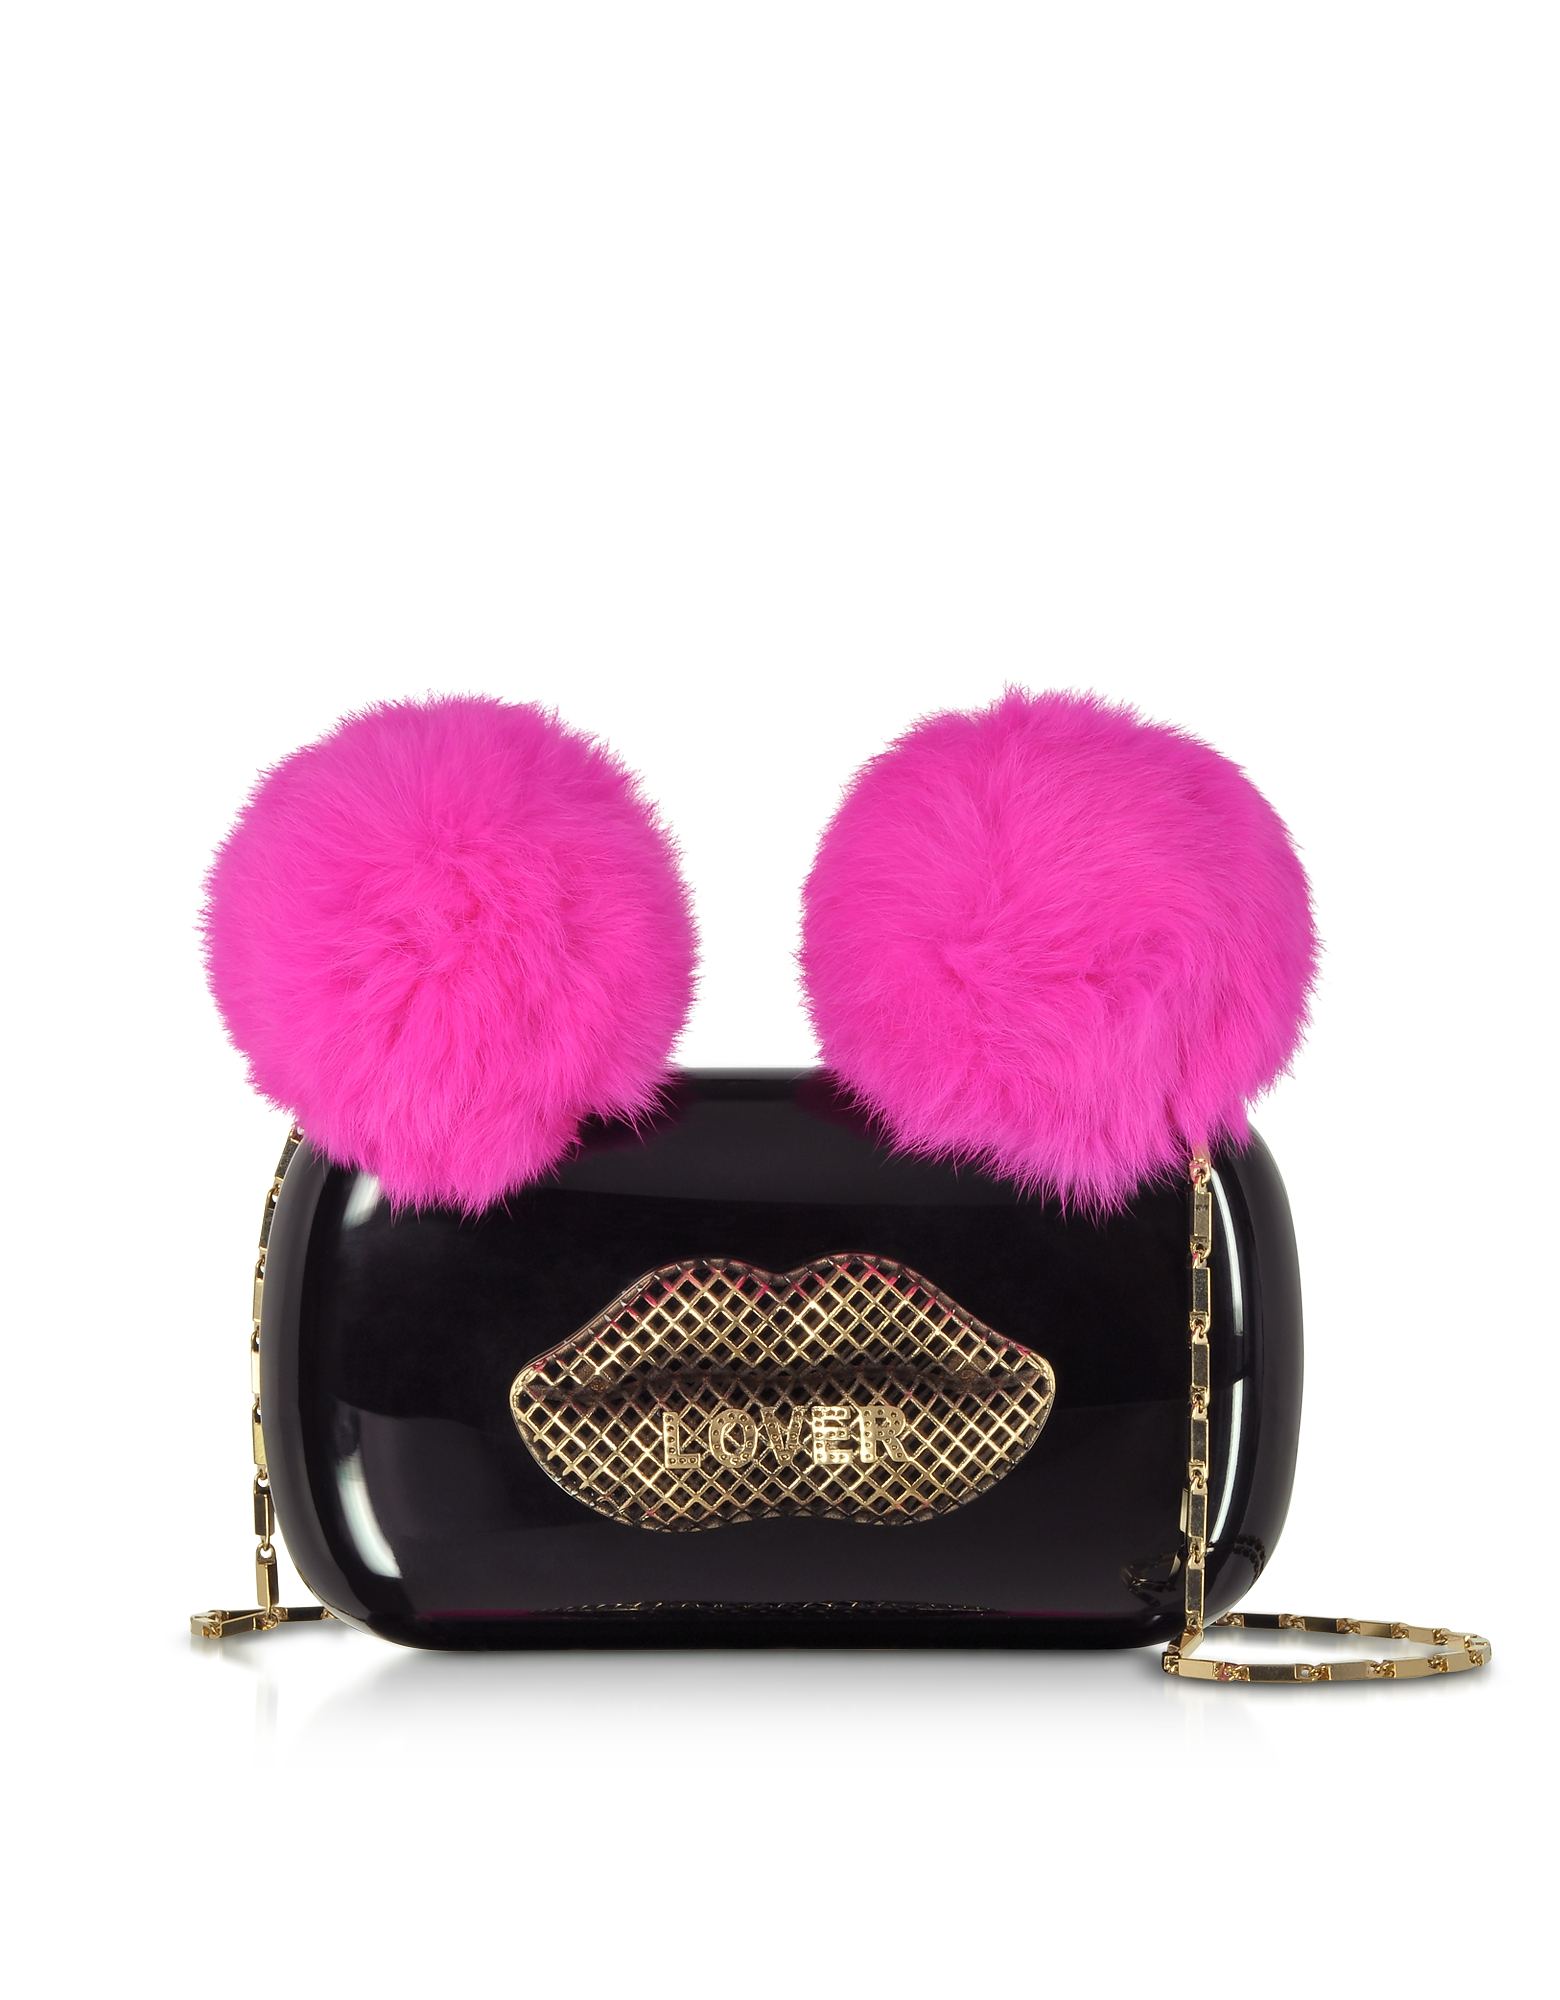 Lover Clutch in Plexiglass Nero con pon Pon Fucsia